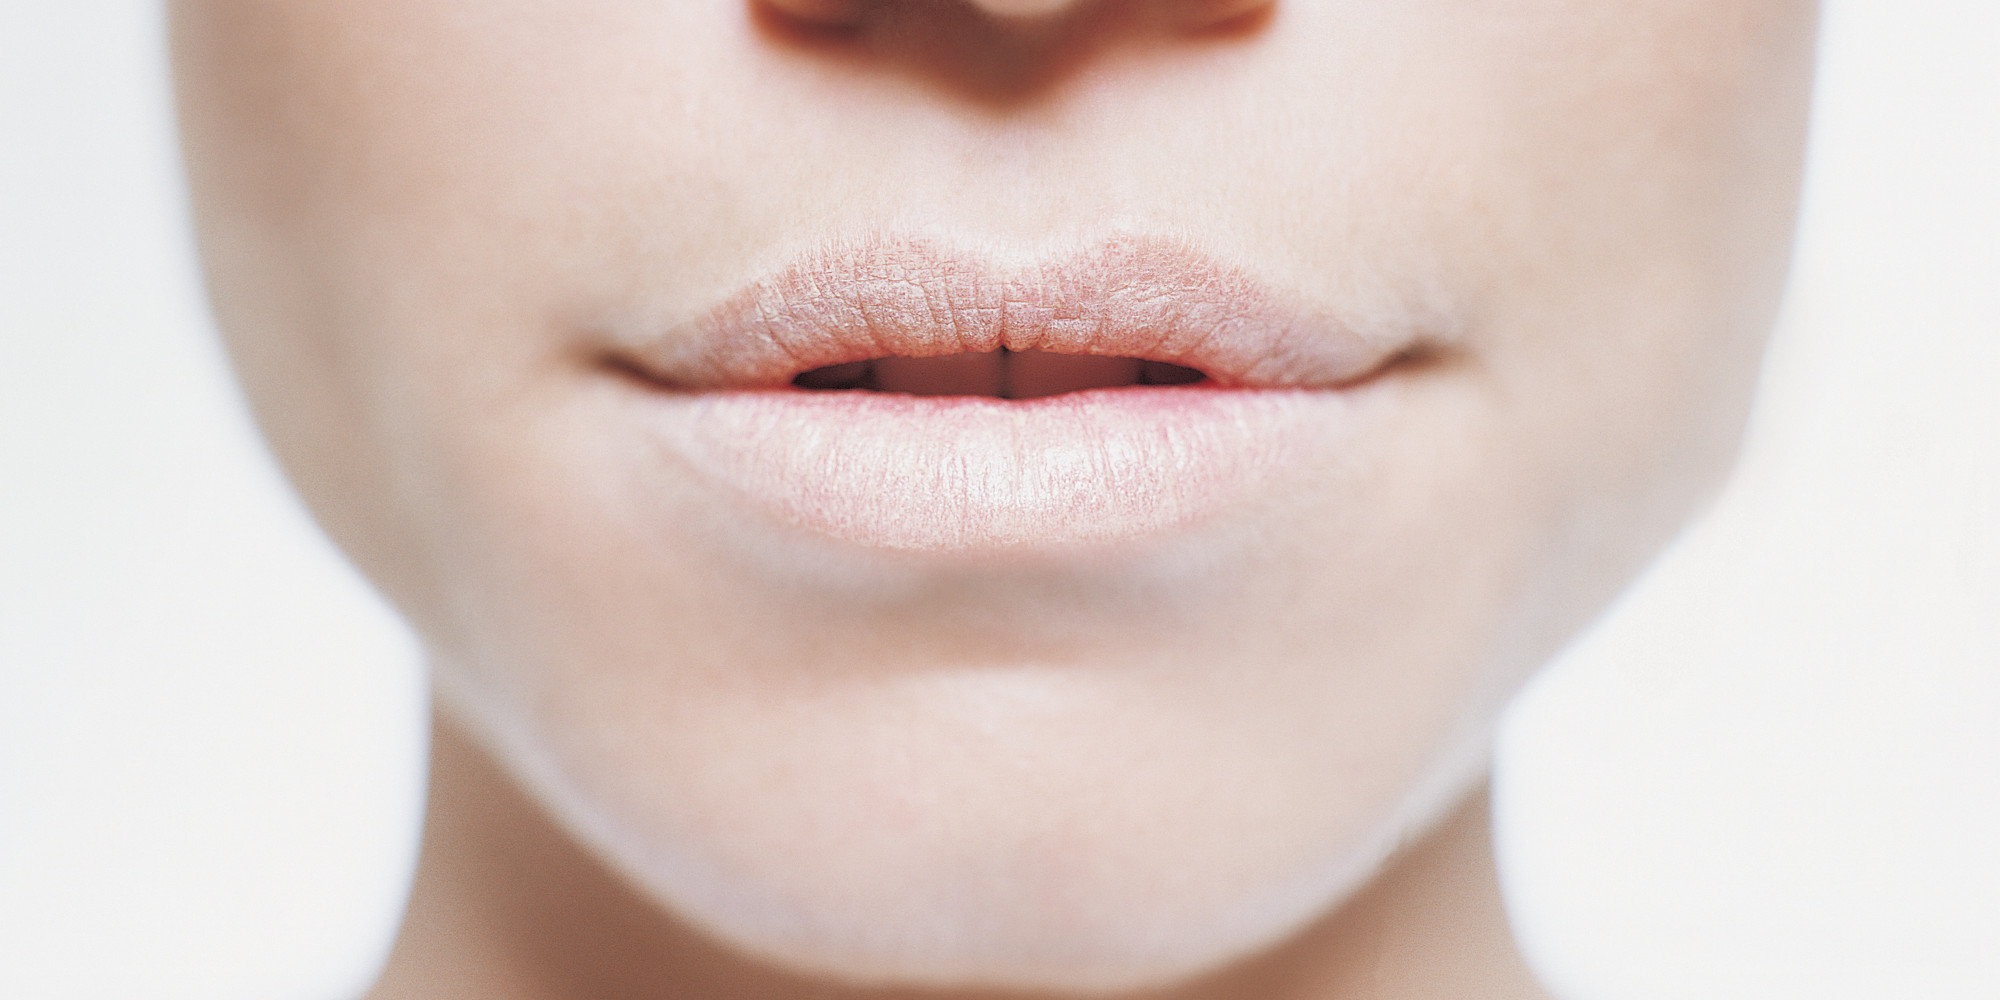 11 ways to prevent chapped lips besides using chapstick | huffpost, Skeleton